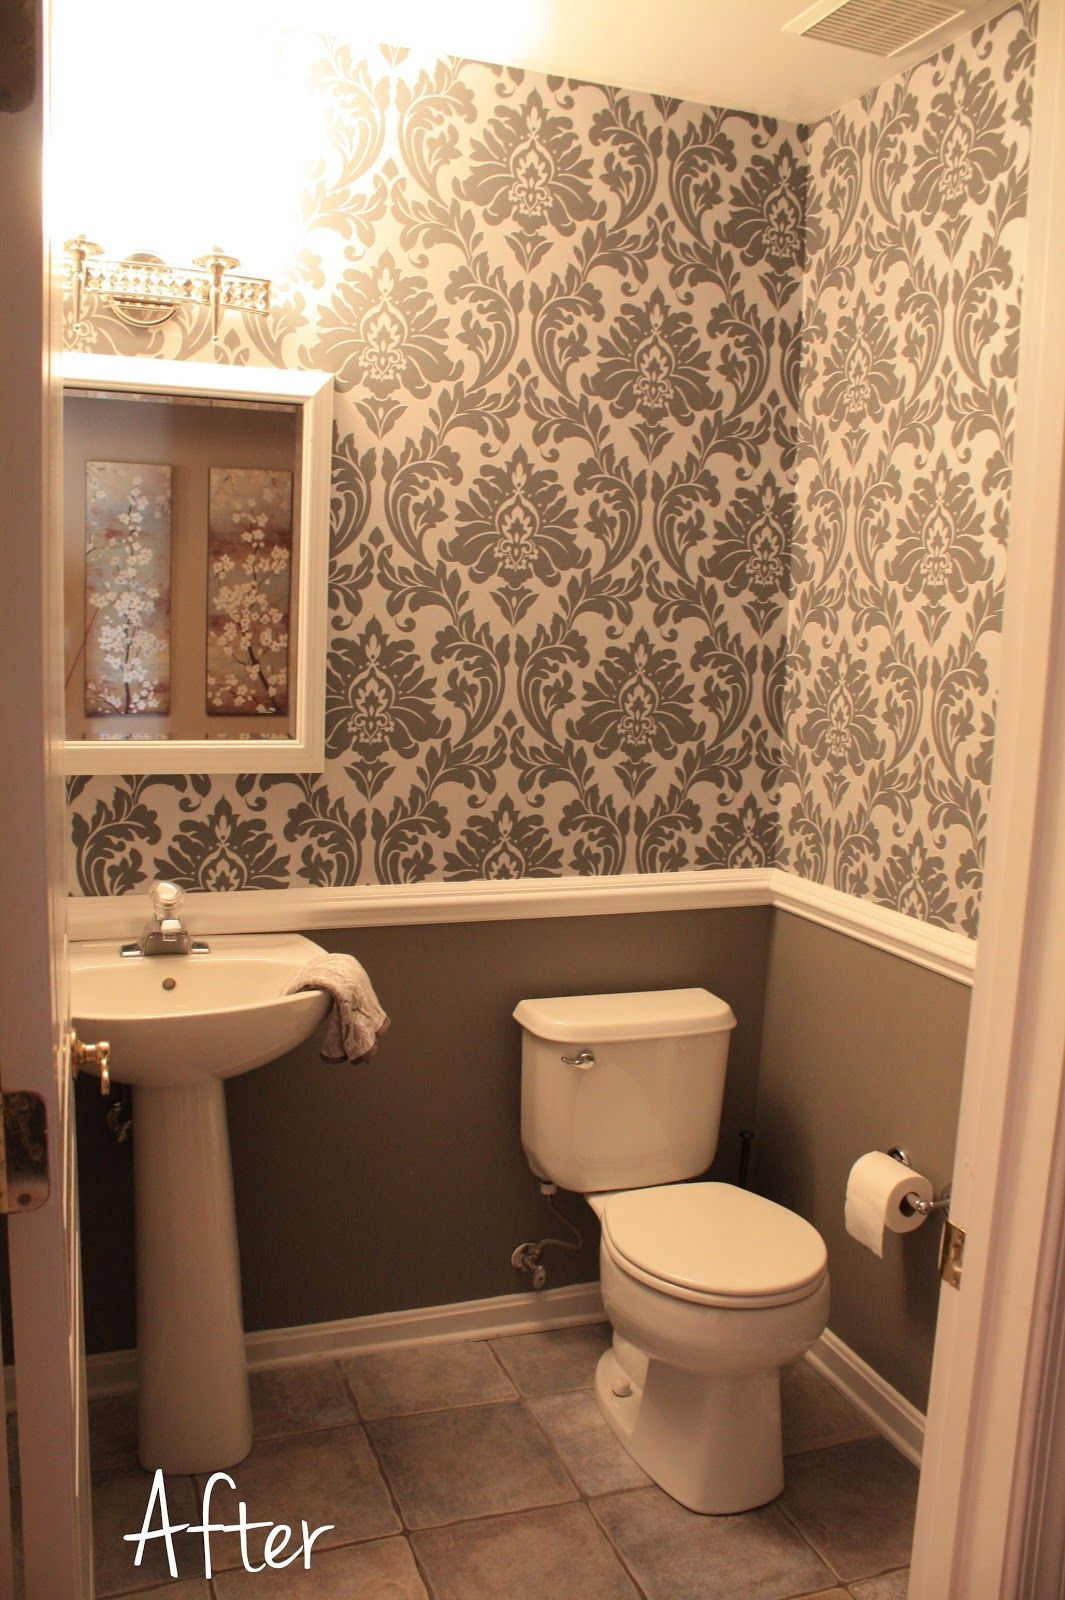 Put A Little Part 2 Powder Room Gets Some Jewelry Small Bathroom Wallpaper Wallpaper For Small Bathrooms Powder Room